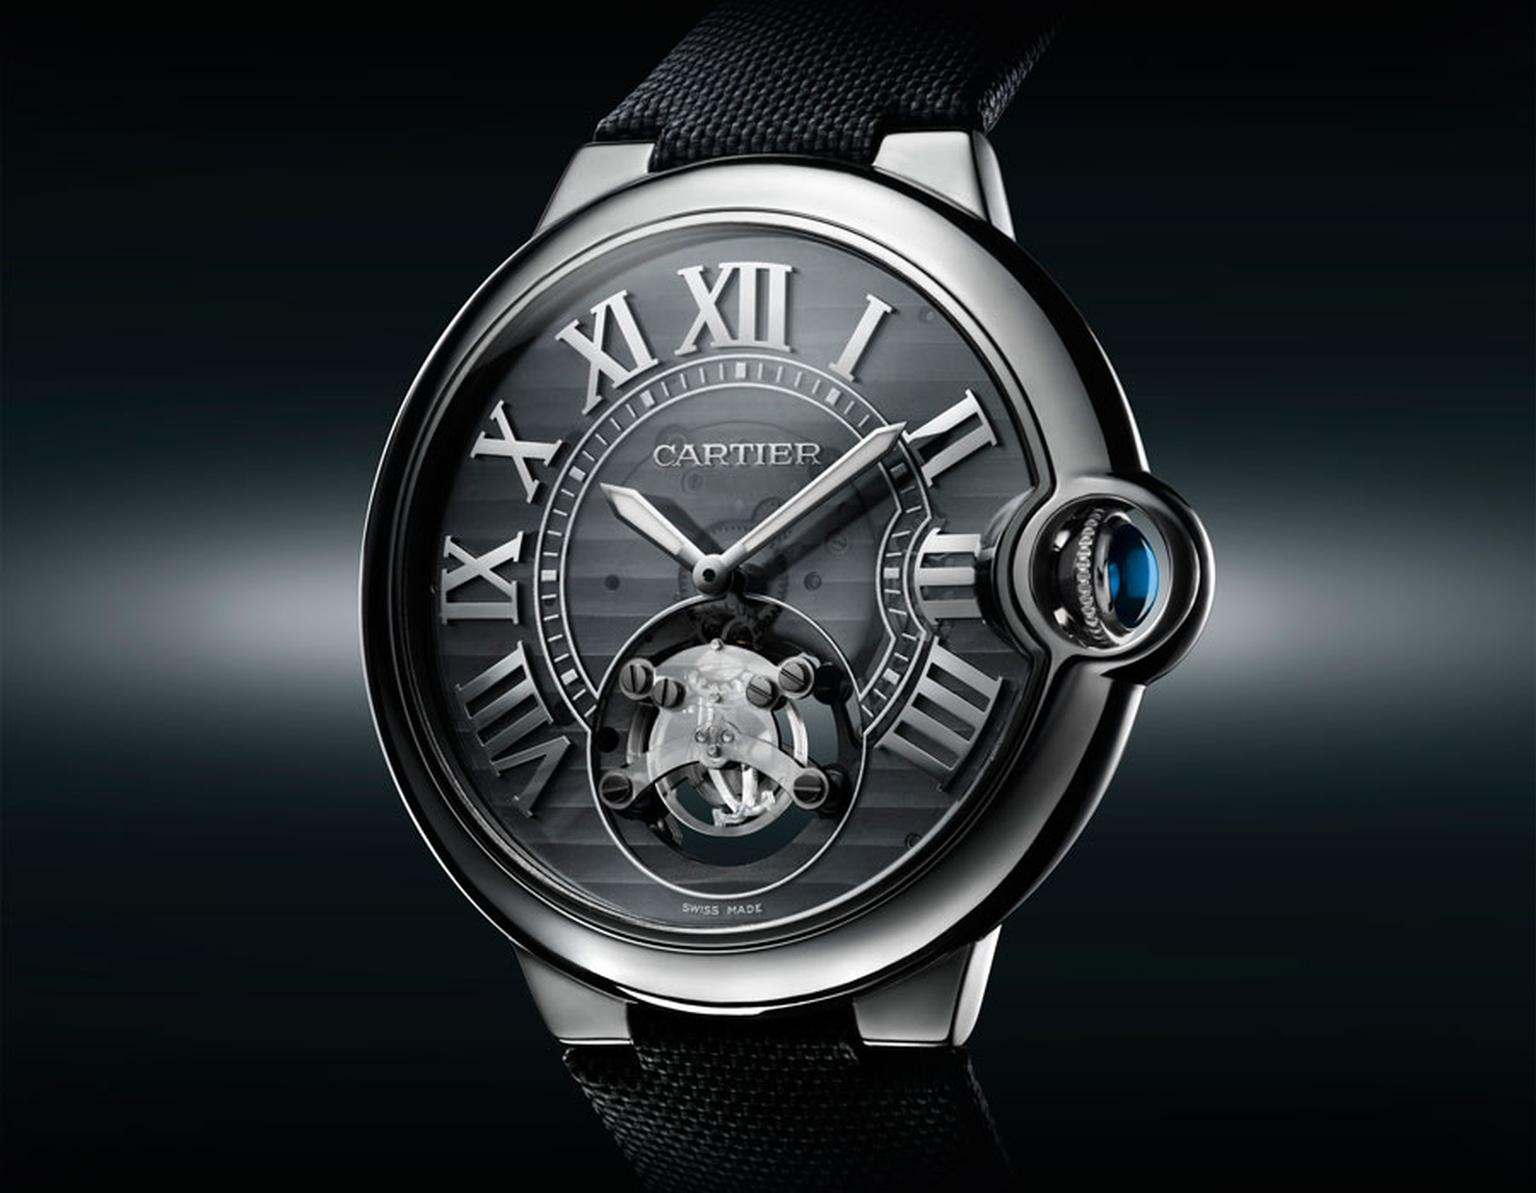 Cartier-ID-one-one.jpg